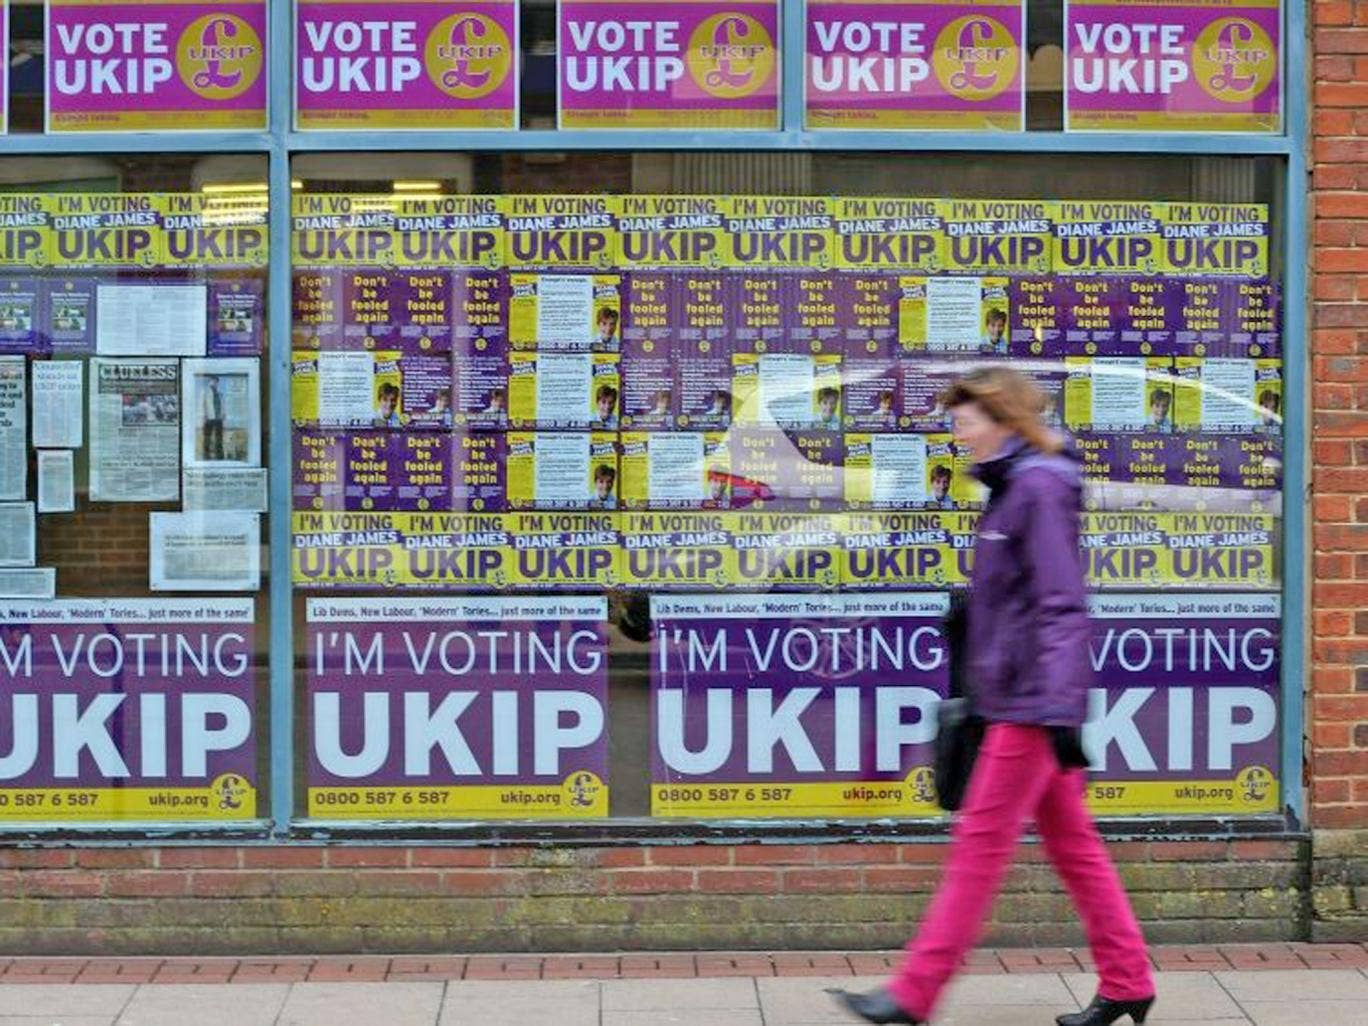 Ukip's candidate is currently in third place, but right behind the Tories